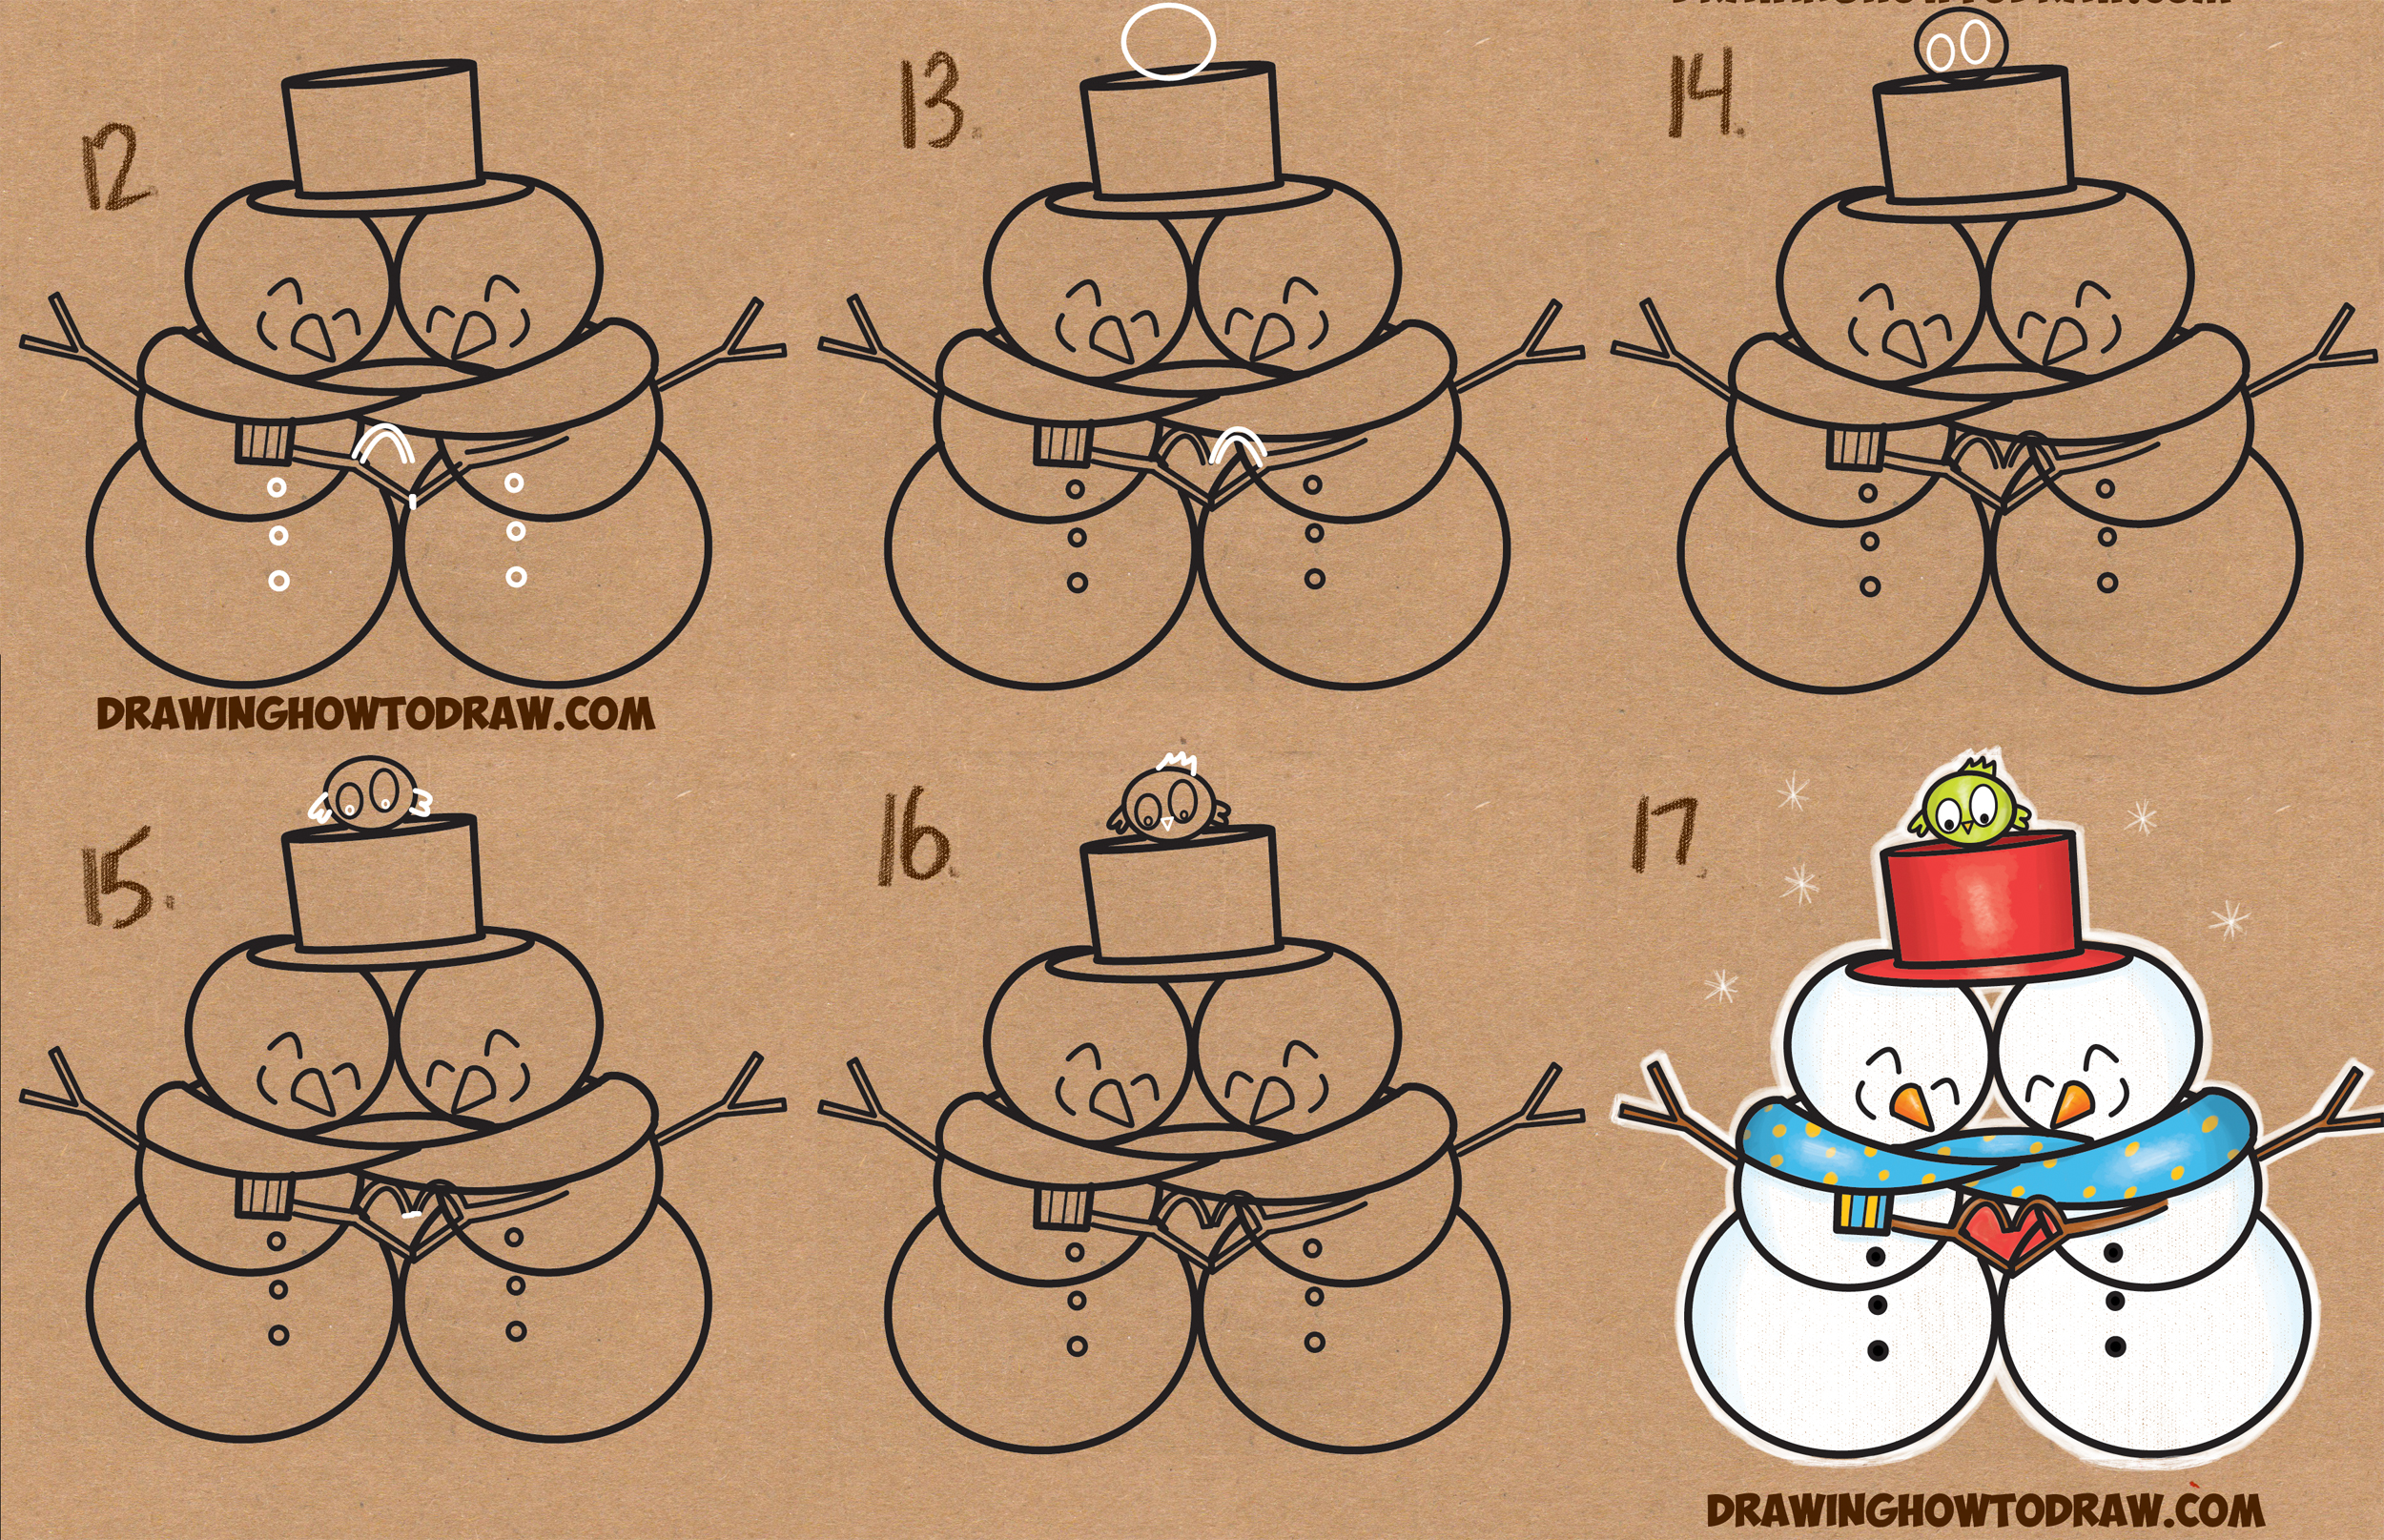 Learn How to Draw 2 Cartoon Snowmen Cuddling (Snowmen Couple in Love) Simple Steps Drawing Lesson for Beginners